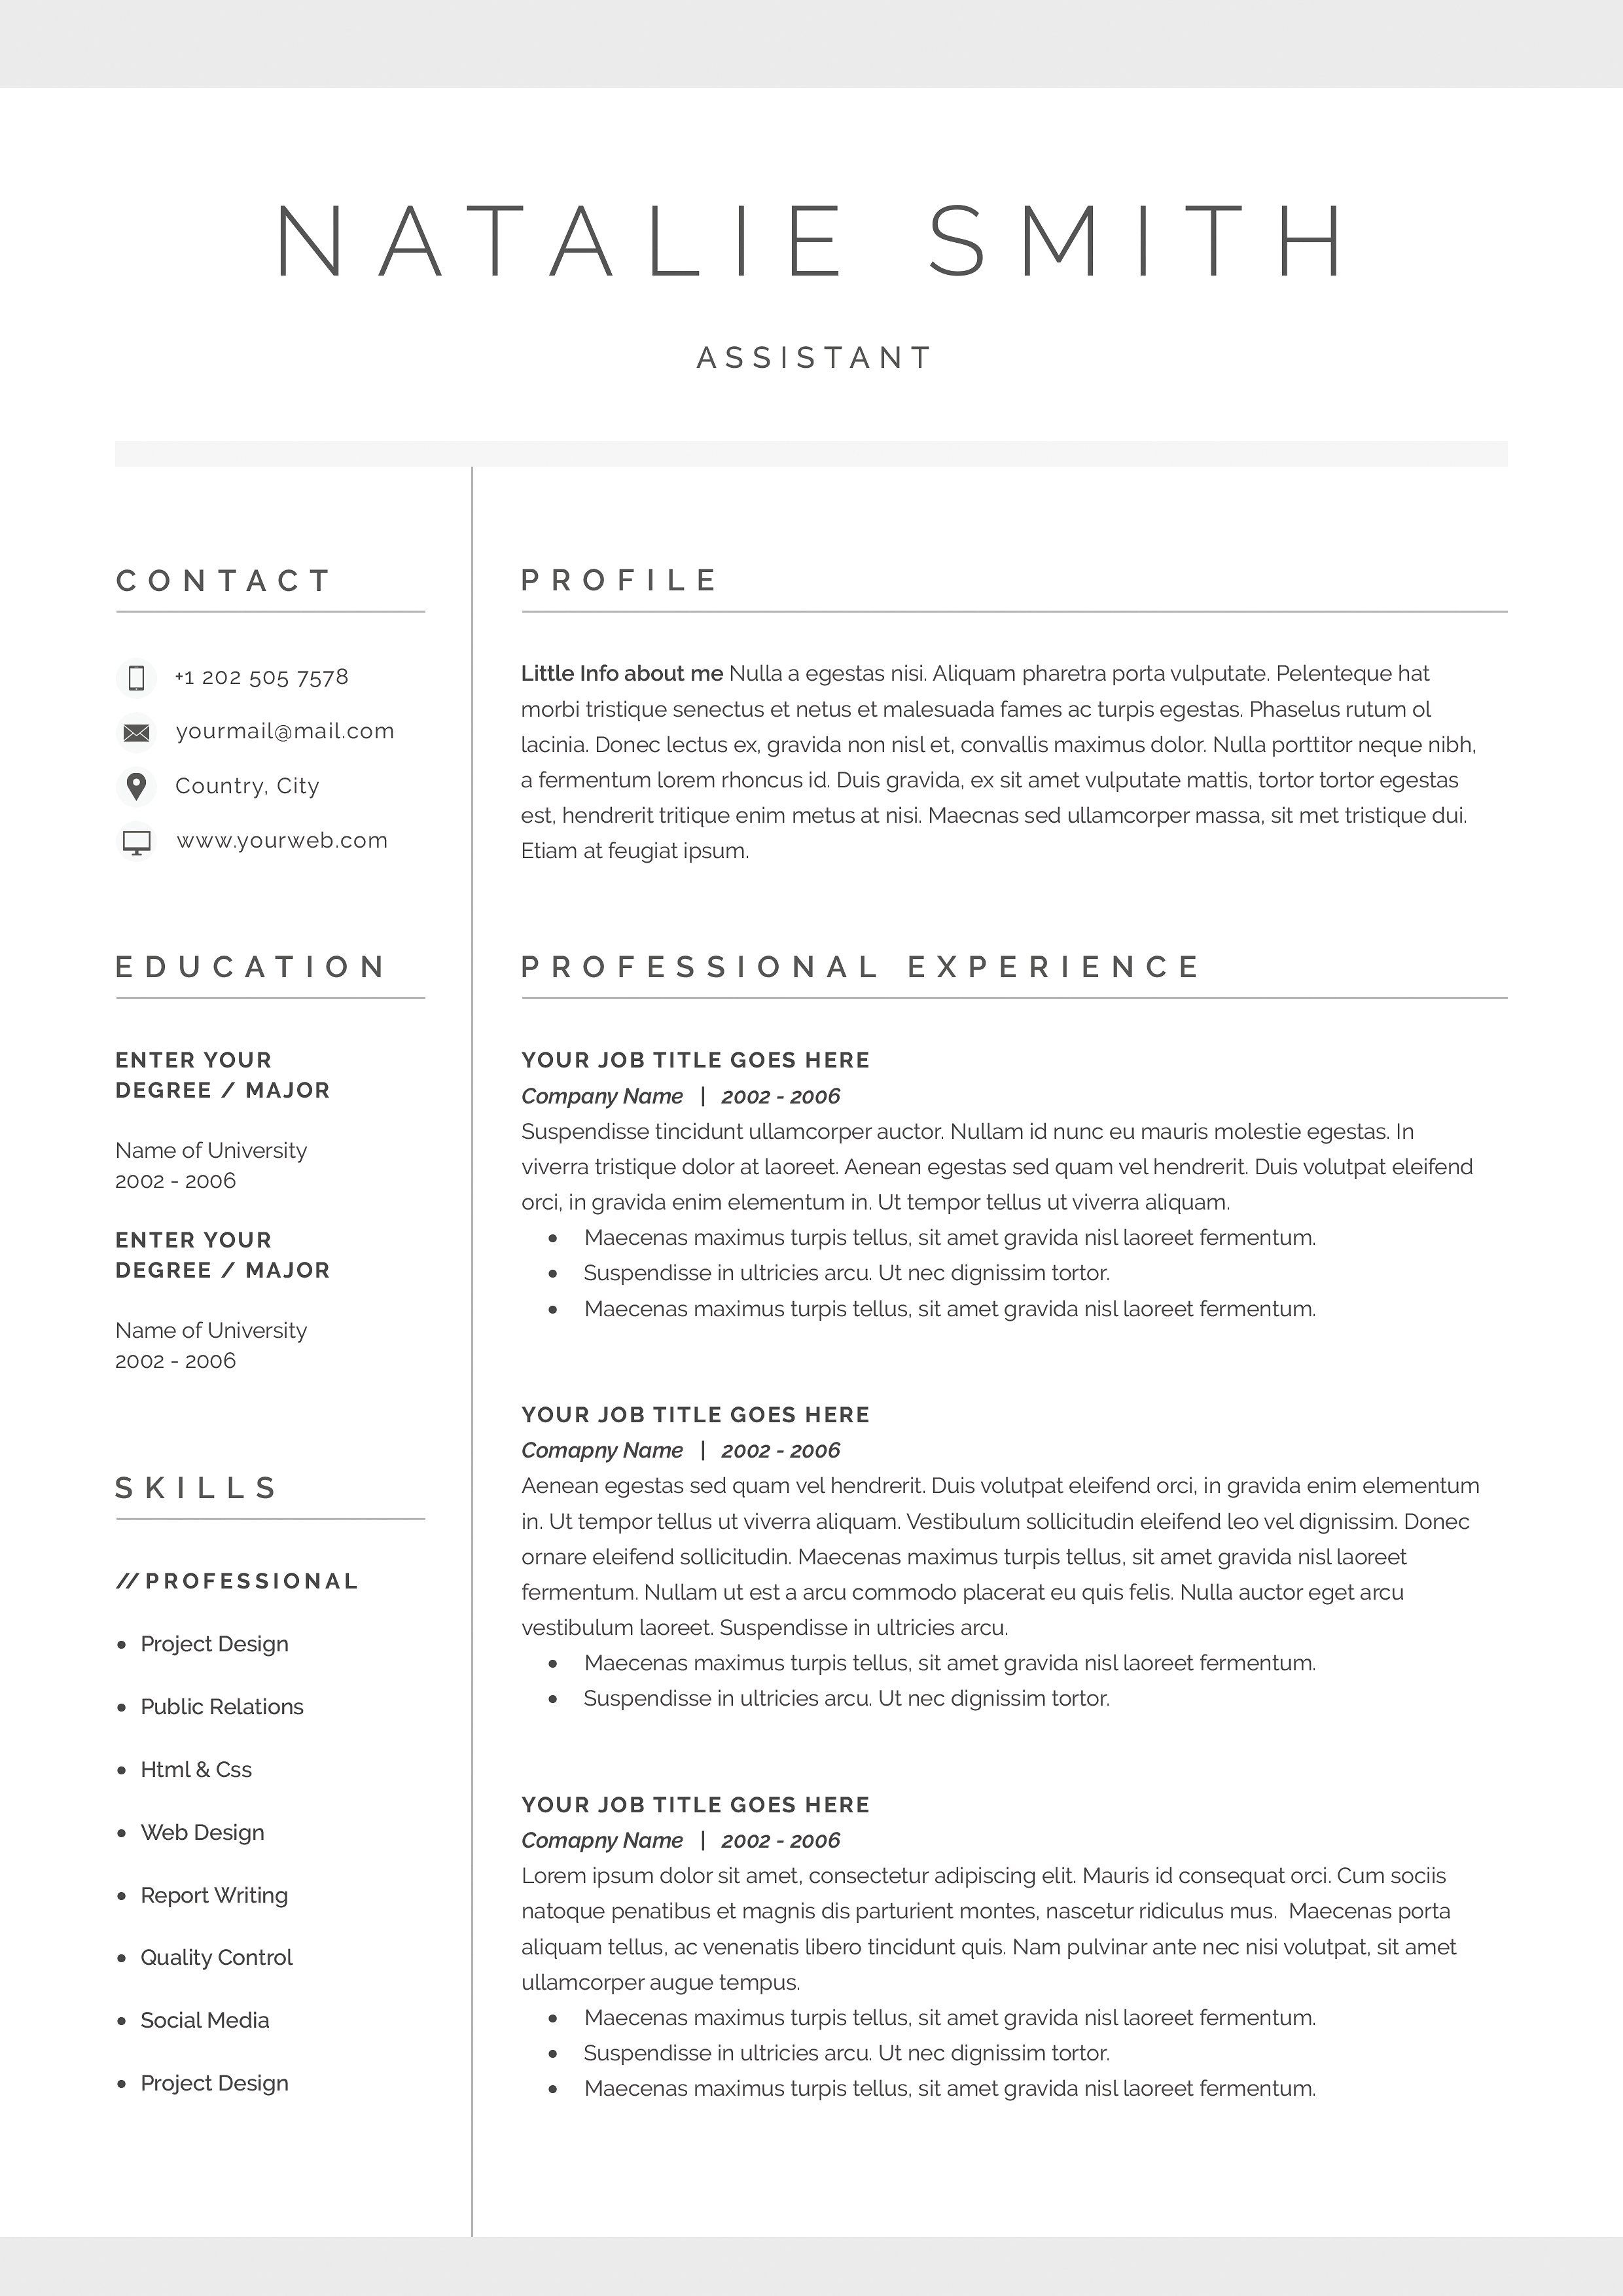 Word Resume & Cover Letter Template by DemeDev on